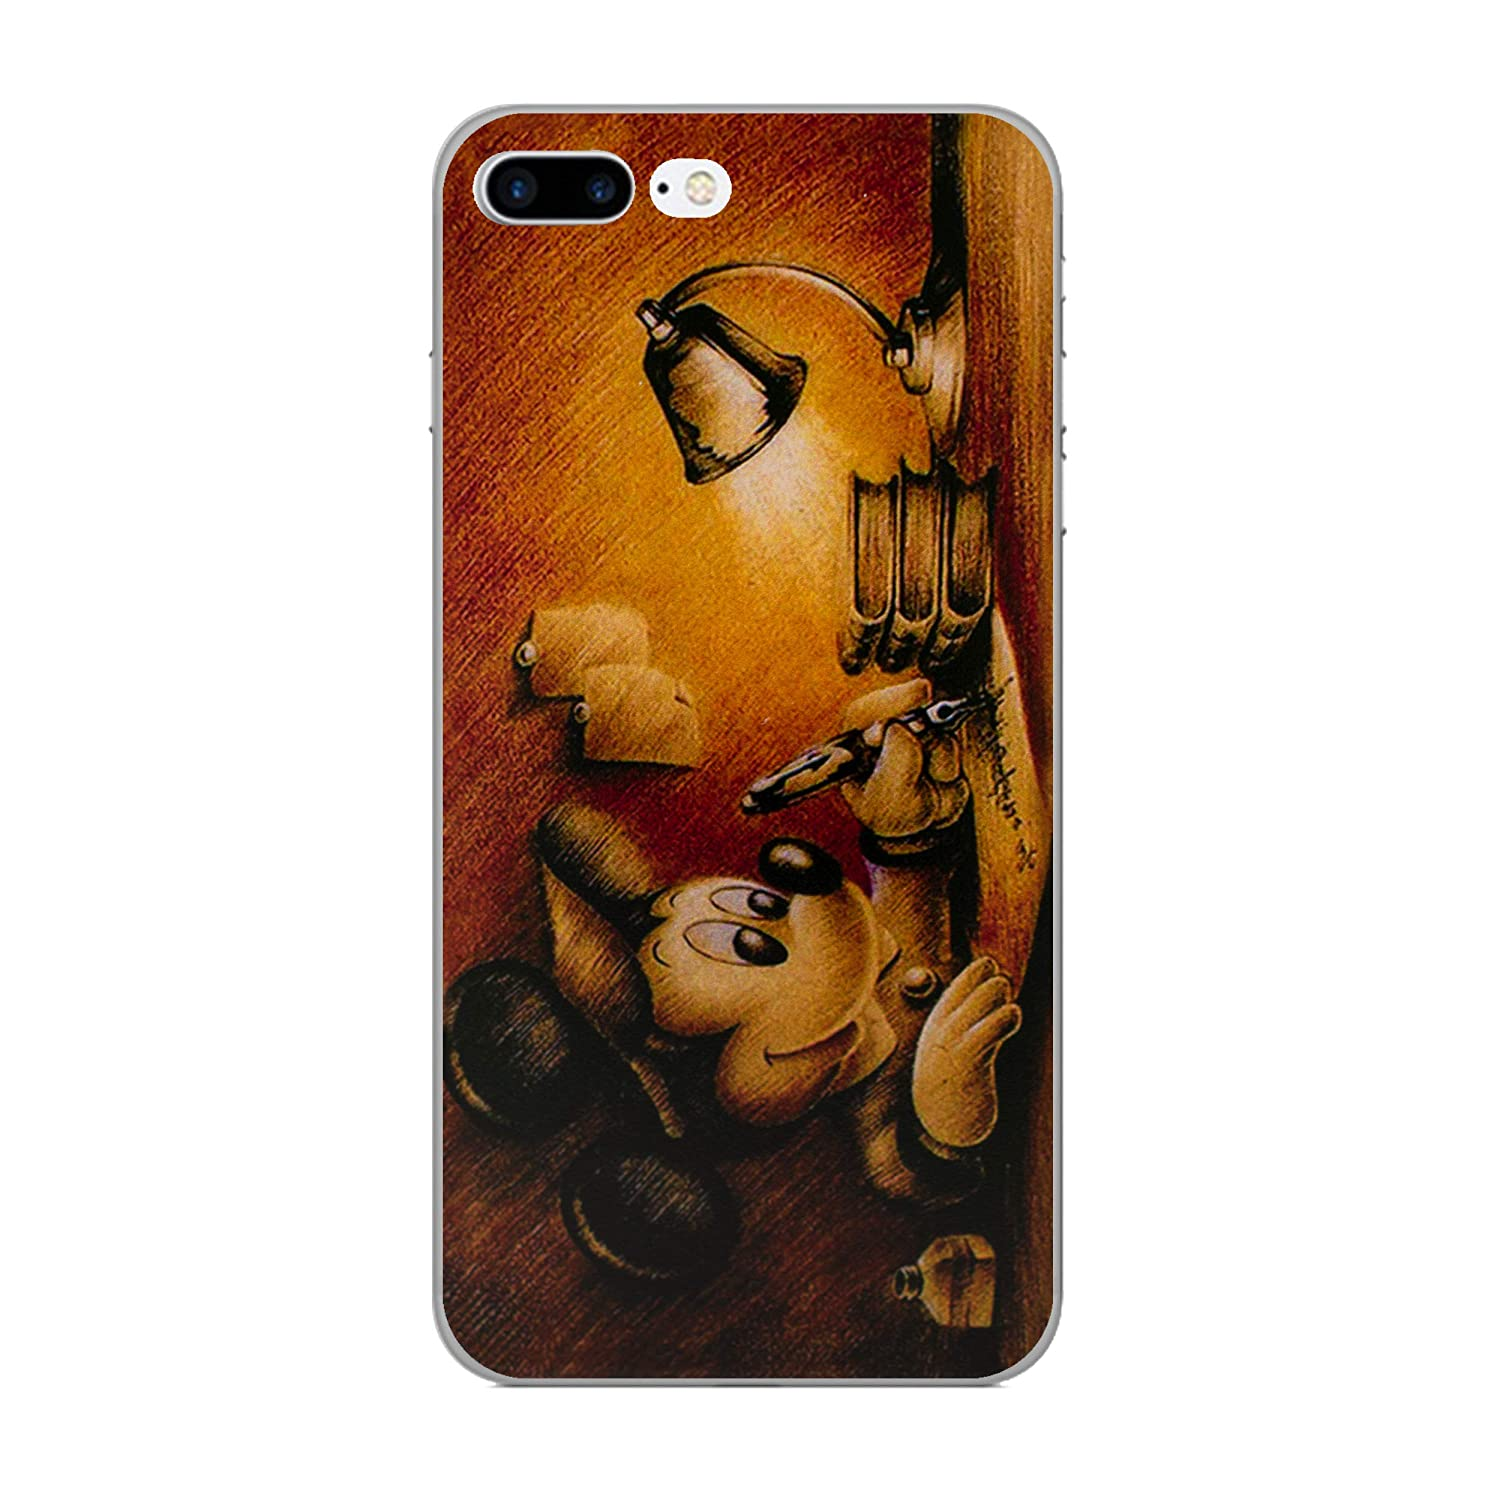 iPhone 8 Plus Cita de Disney Estuche de Silicona / Cubierta de Gel para Apple iPhone 8 Plus (5.5